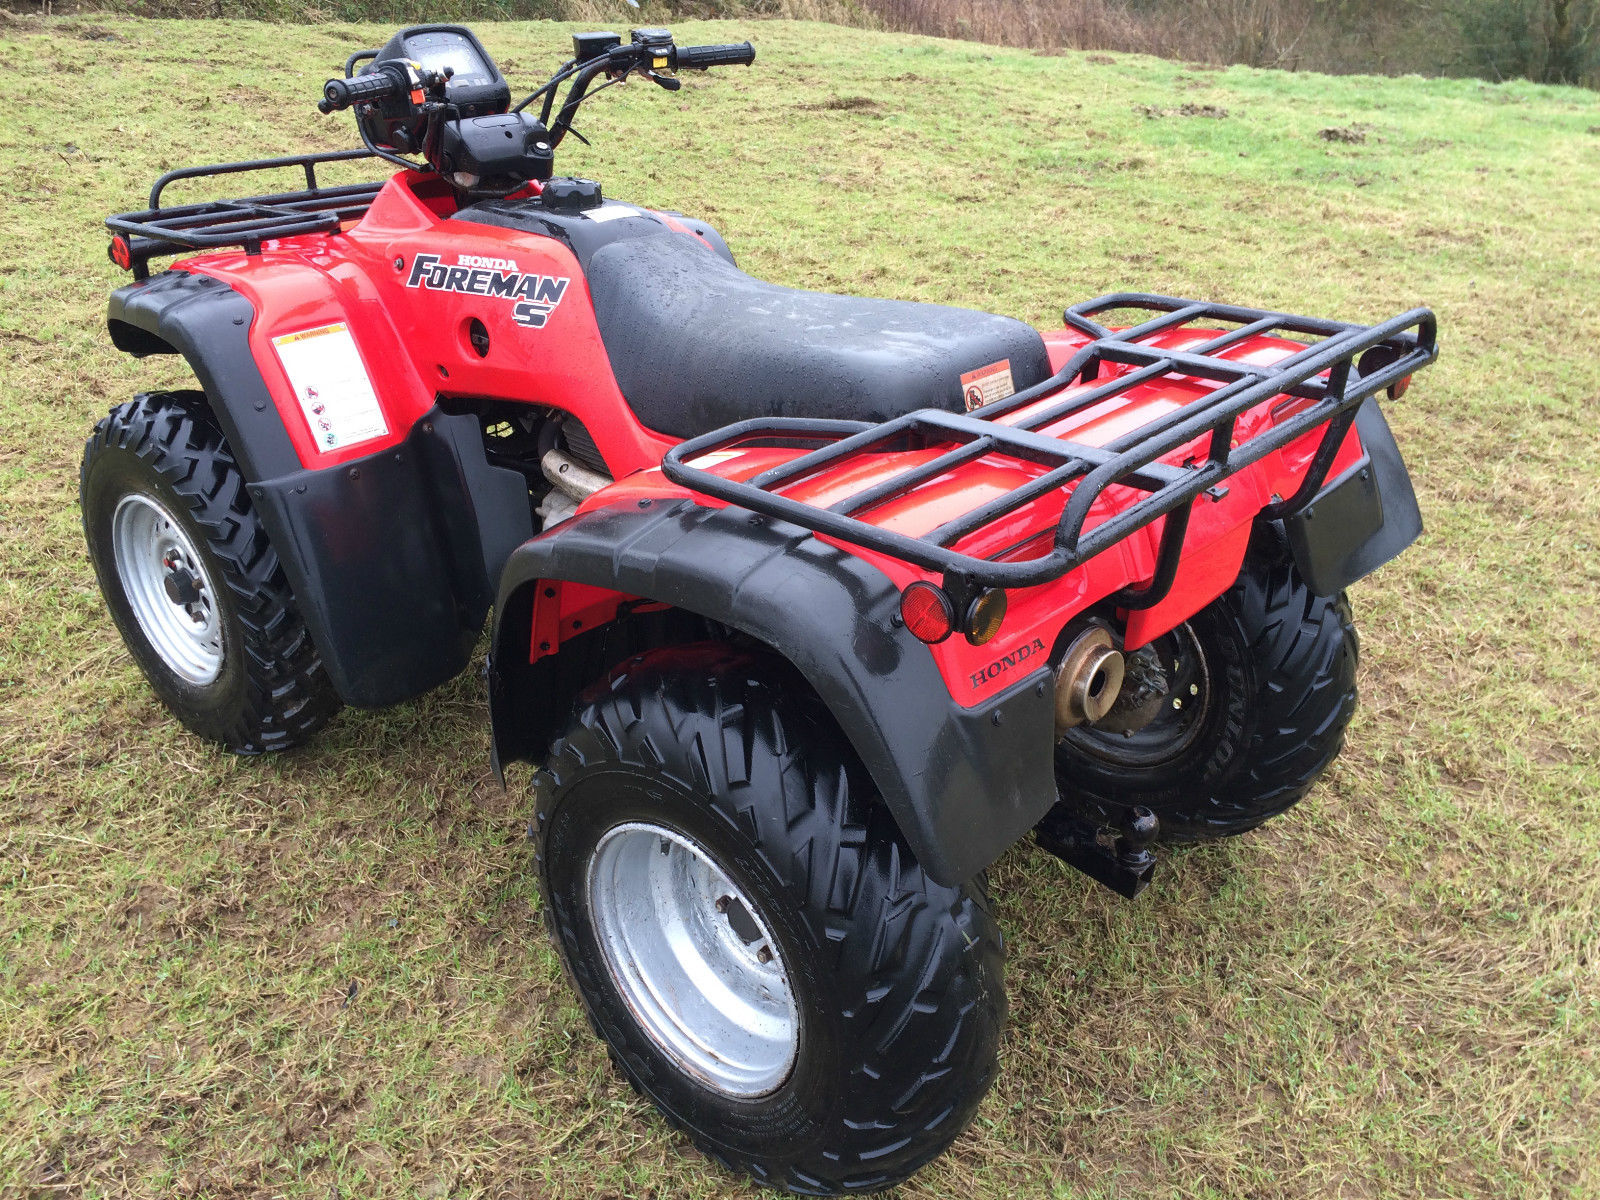 honda foreman trx450 atv farm quad bike 2 4wd 450cc 330hours no vat. Black Bedroom Furniture Sets. Home Design Ideas